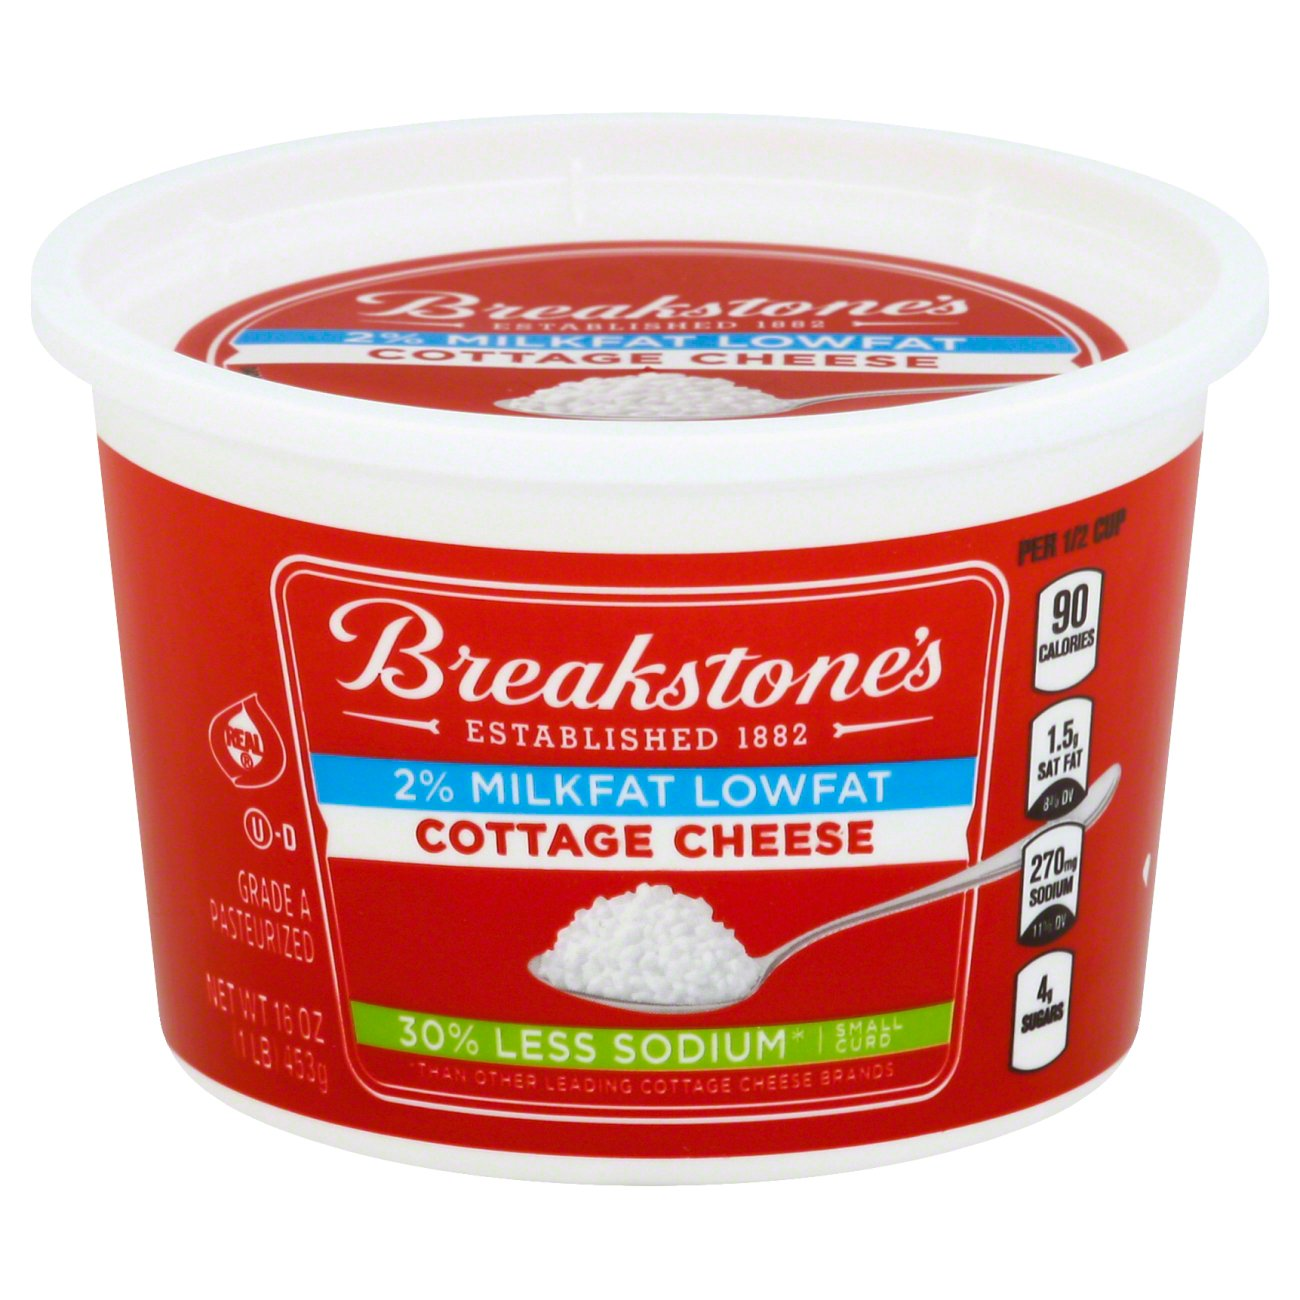 Fine Cottage Cheese Shop H E B Everyday Low Prices Download Free Architecture Designs Rallybritishbridgeorg